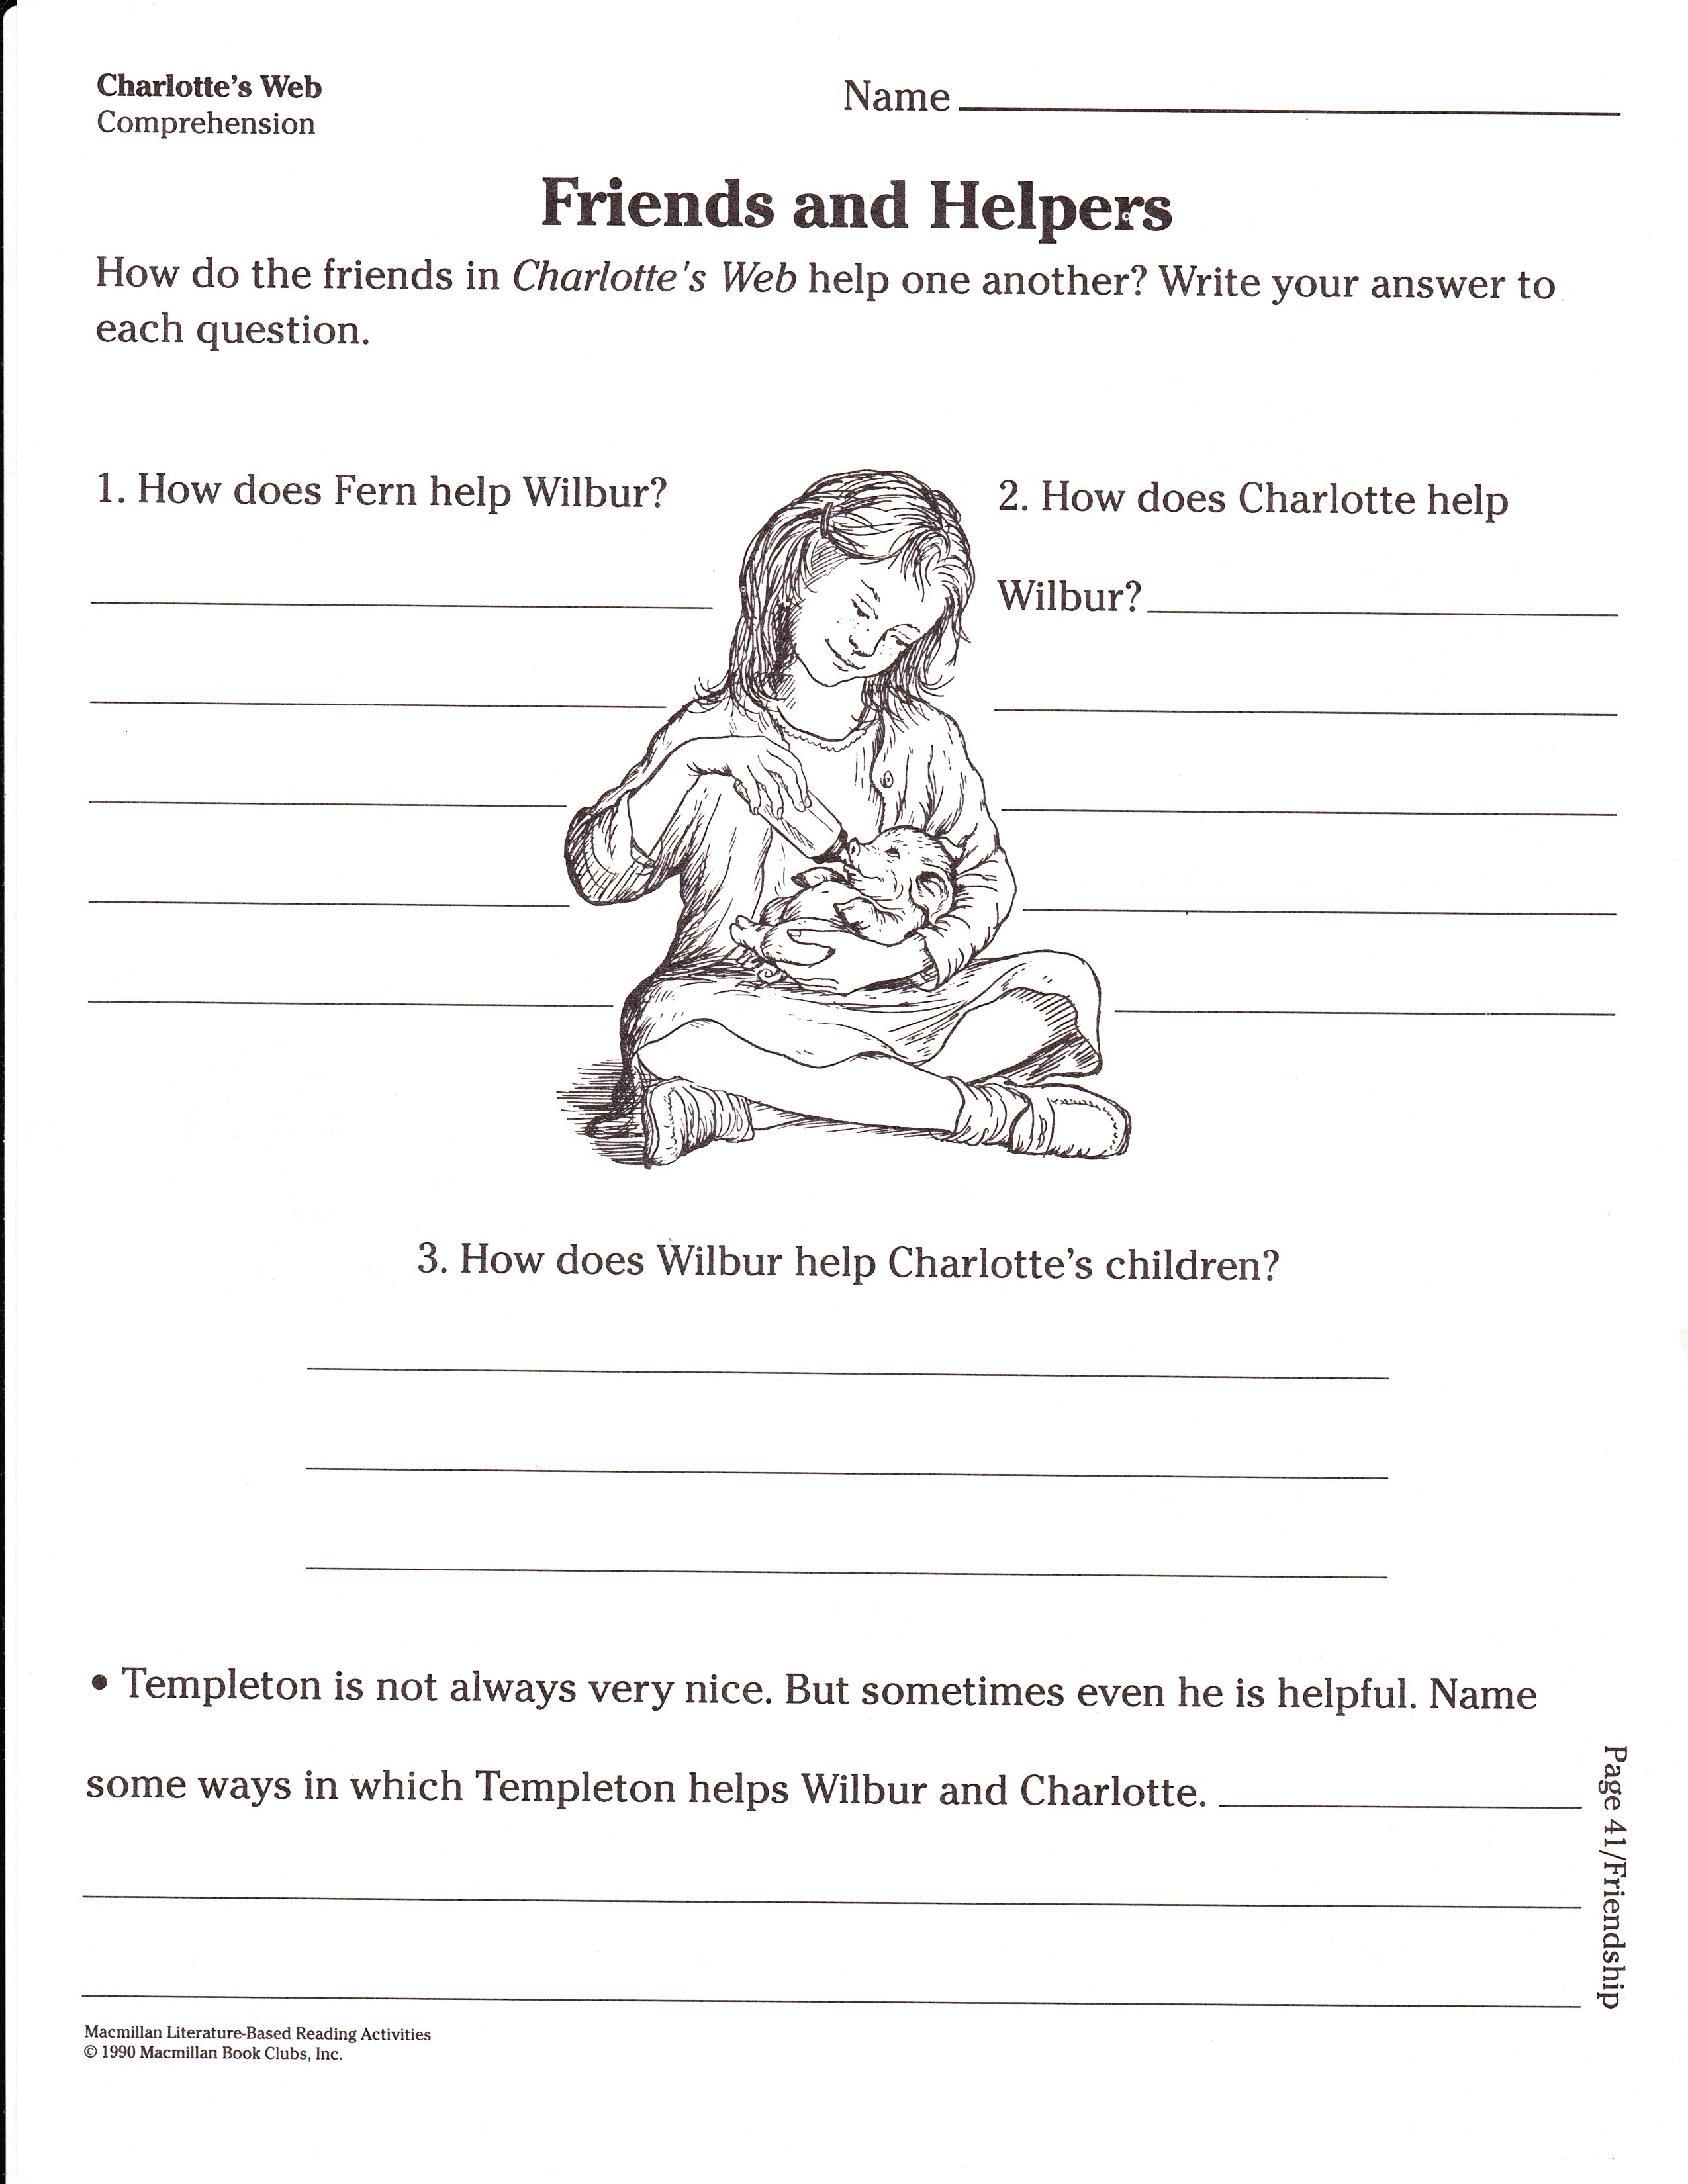 Worksheets Cow Eye Dissection Worksheet Answers 100 cow eye dissection worksheet images how to shift from think engaged learning the right